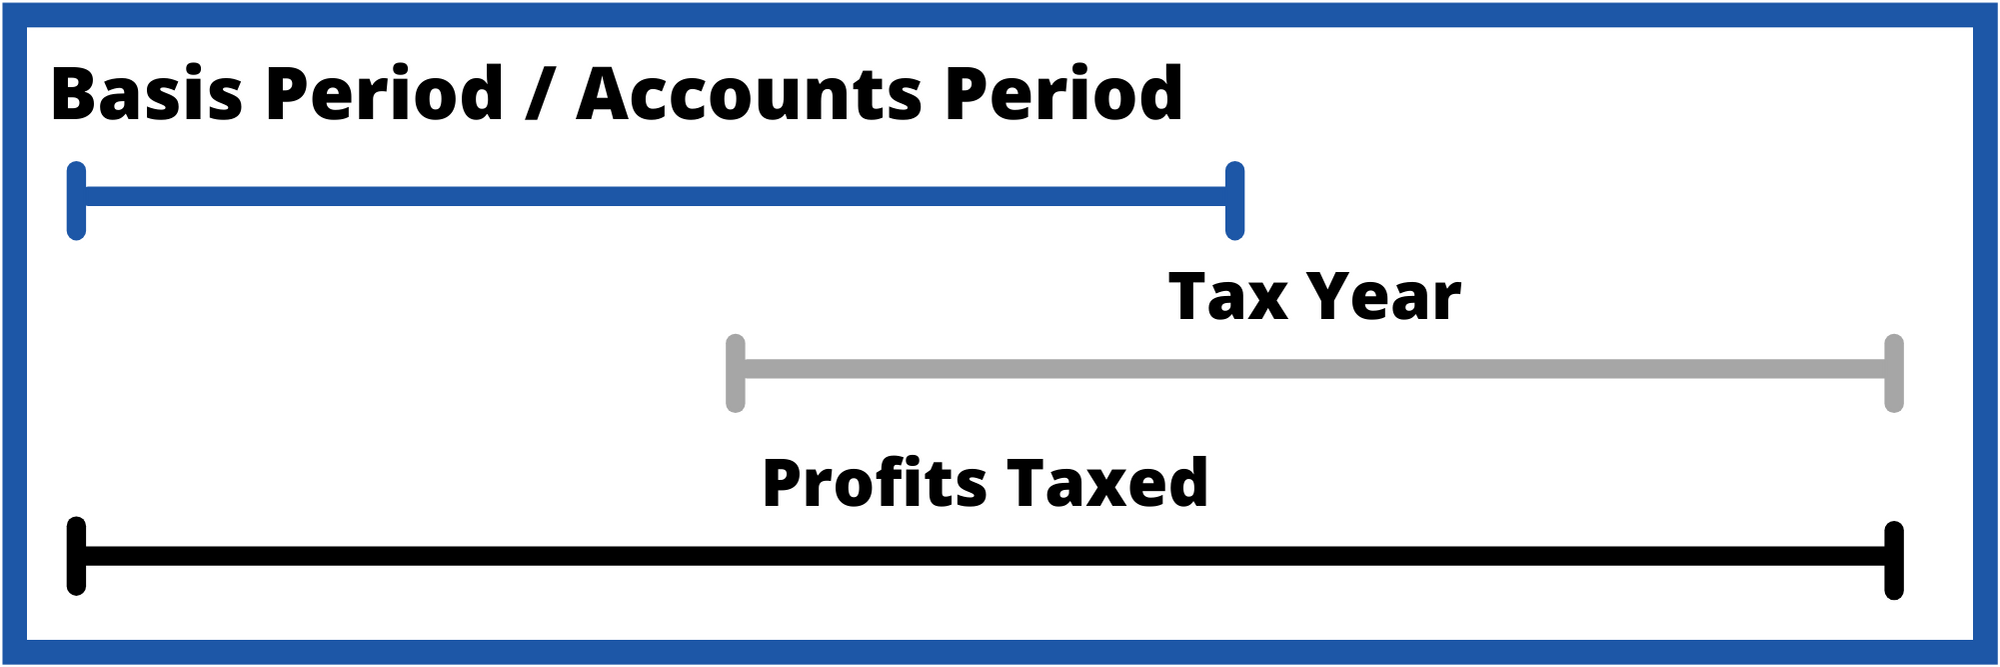 Timeline showing that the tax to be charged in the tax year includes the basis period.